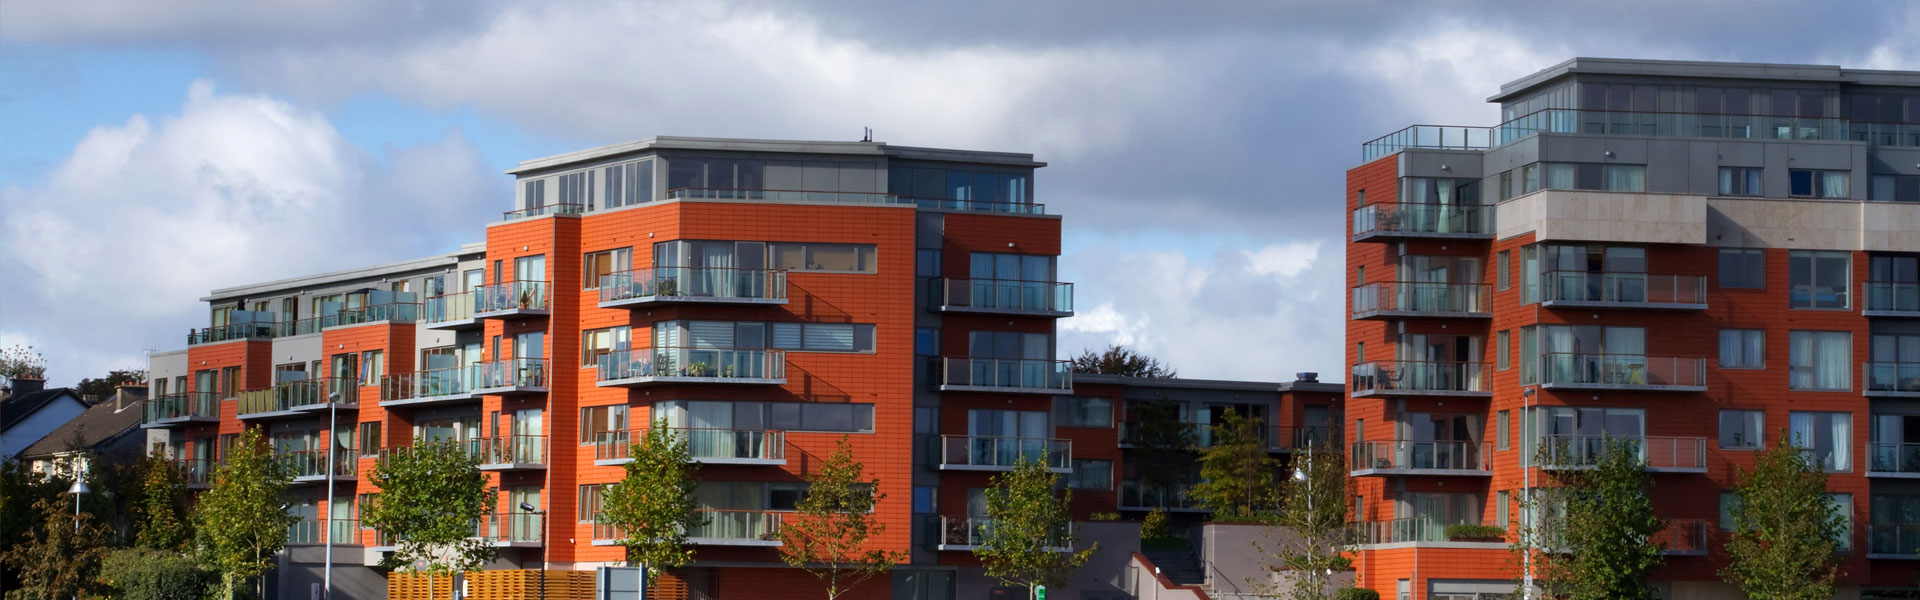 professional Property management in Merrion